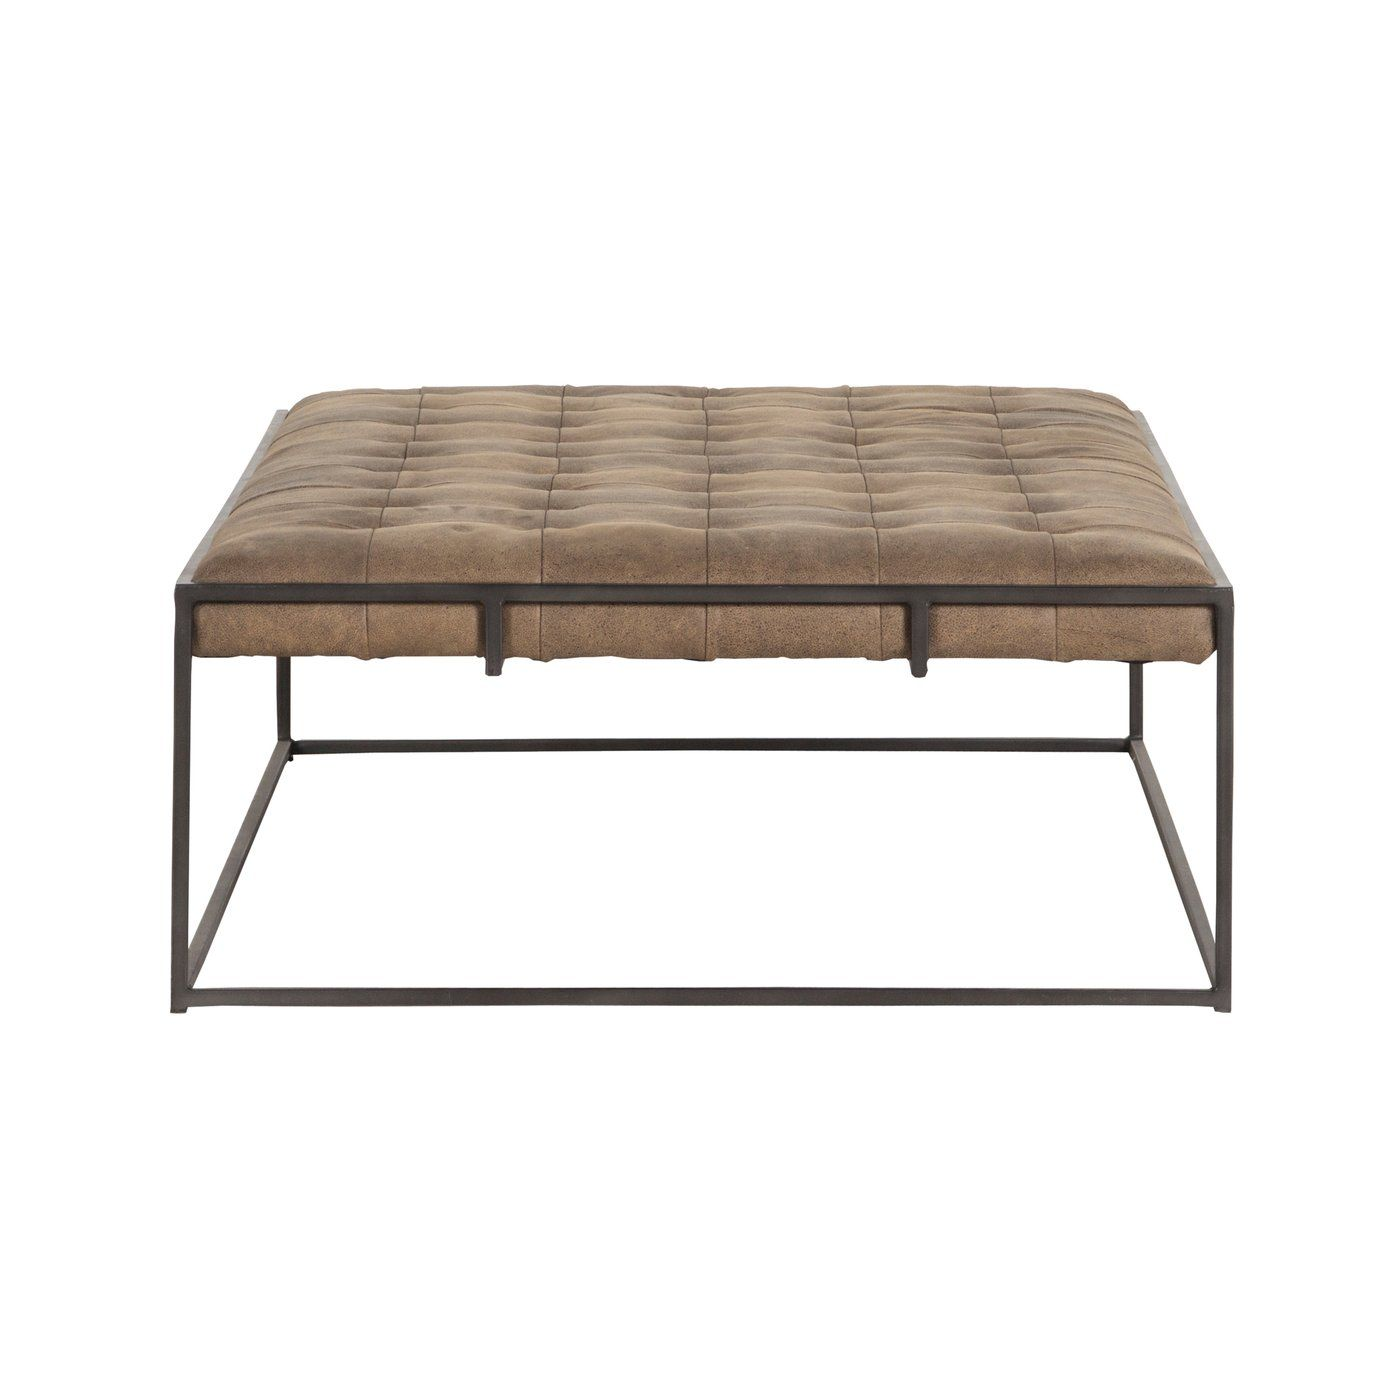 Incredible Oxford Coffee Table In 2019 Living Areas Leather Ottoman Andrewgaddart Wooden Chair Designs For Living Room Andrewgaddartcom